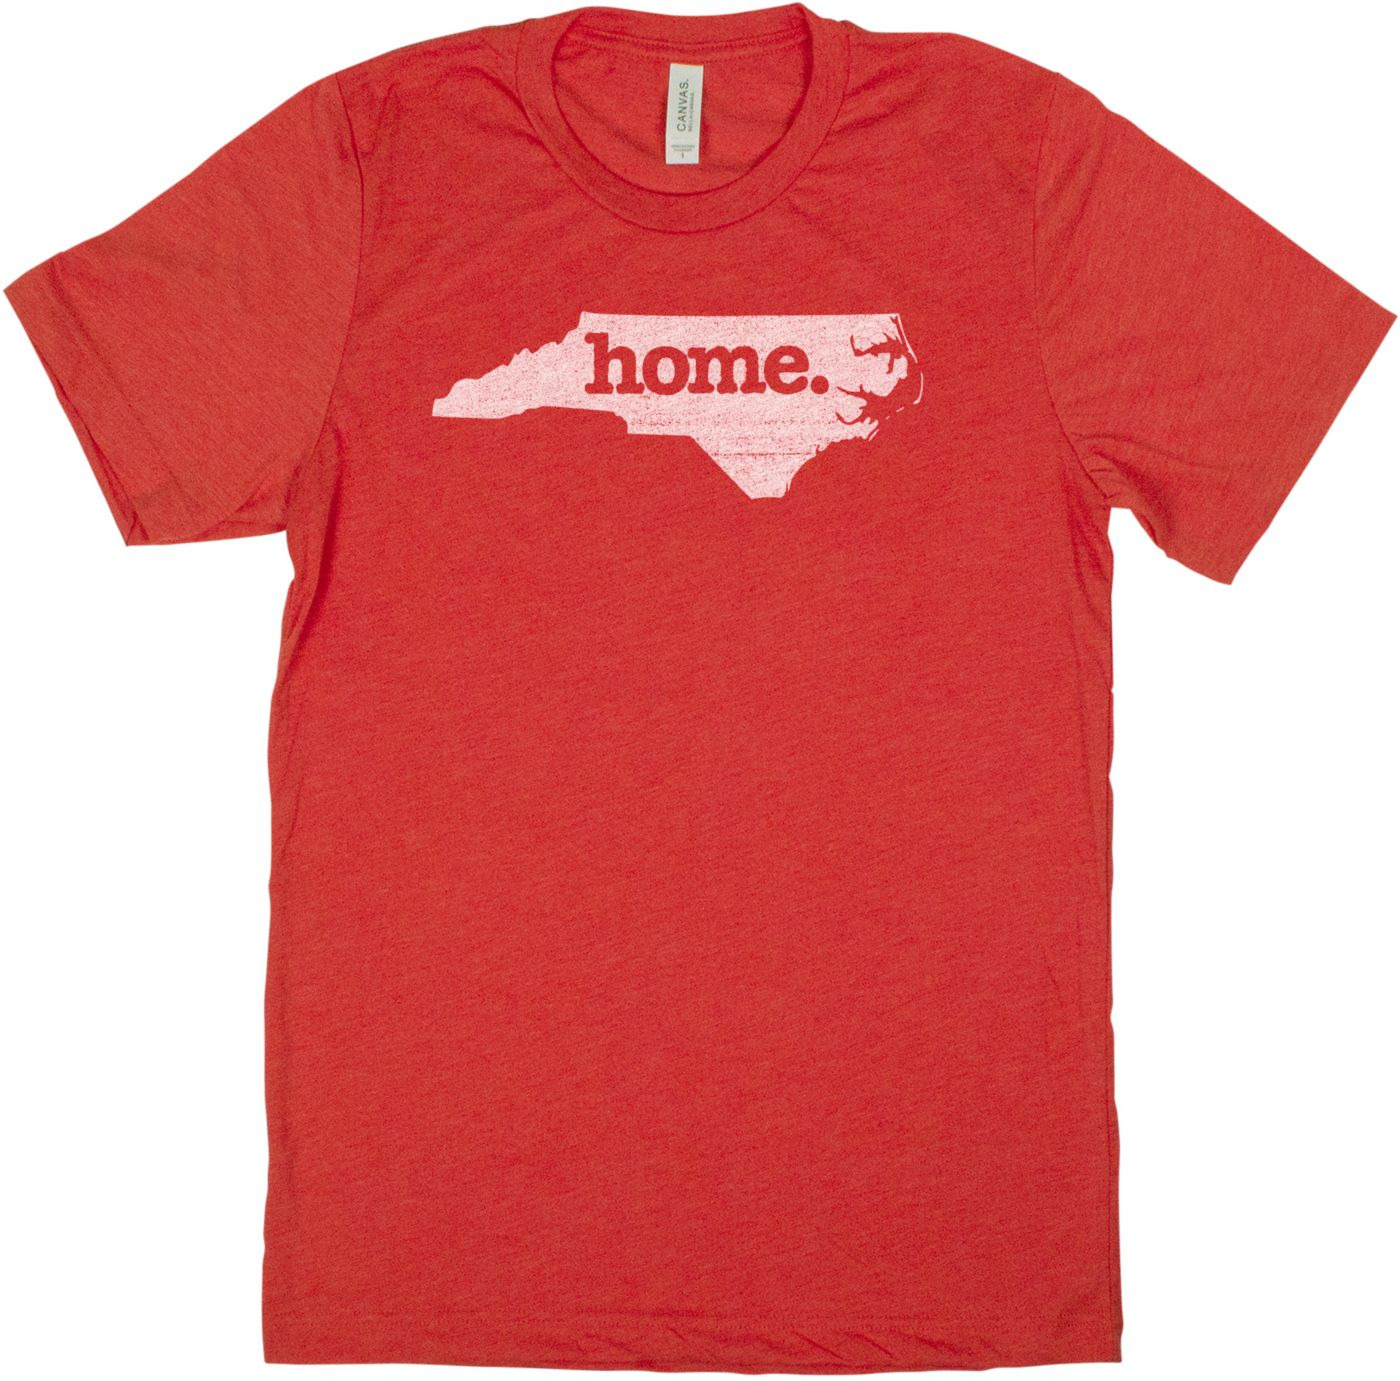 Home State Apparel Men's Home State North Carolina Short Sleeve T-Shirt